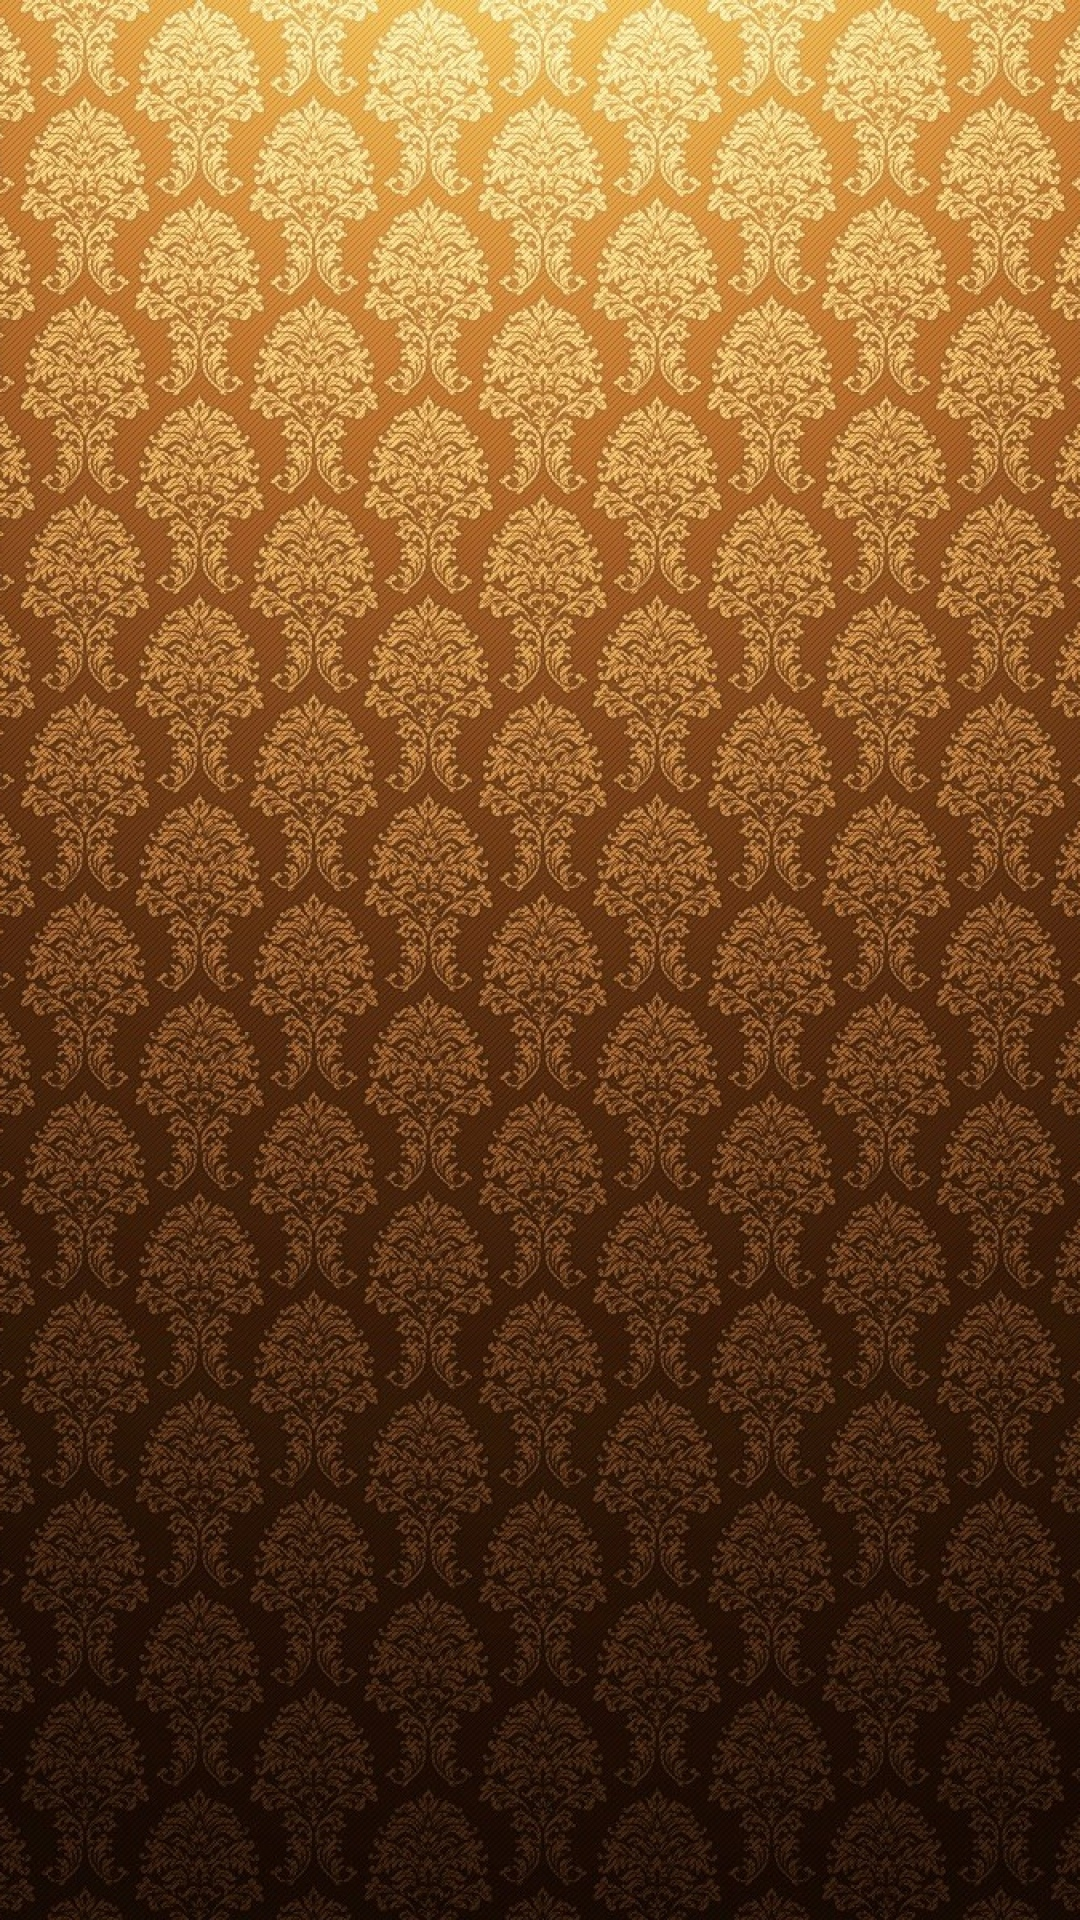 Brown Android Wallpaper